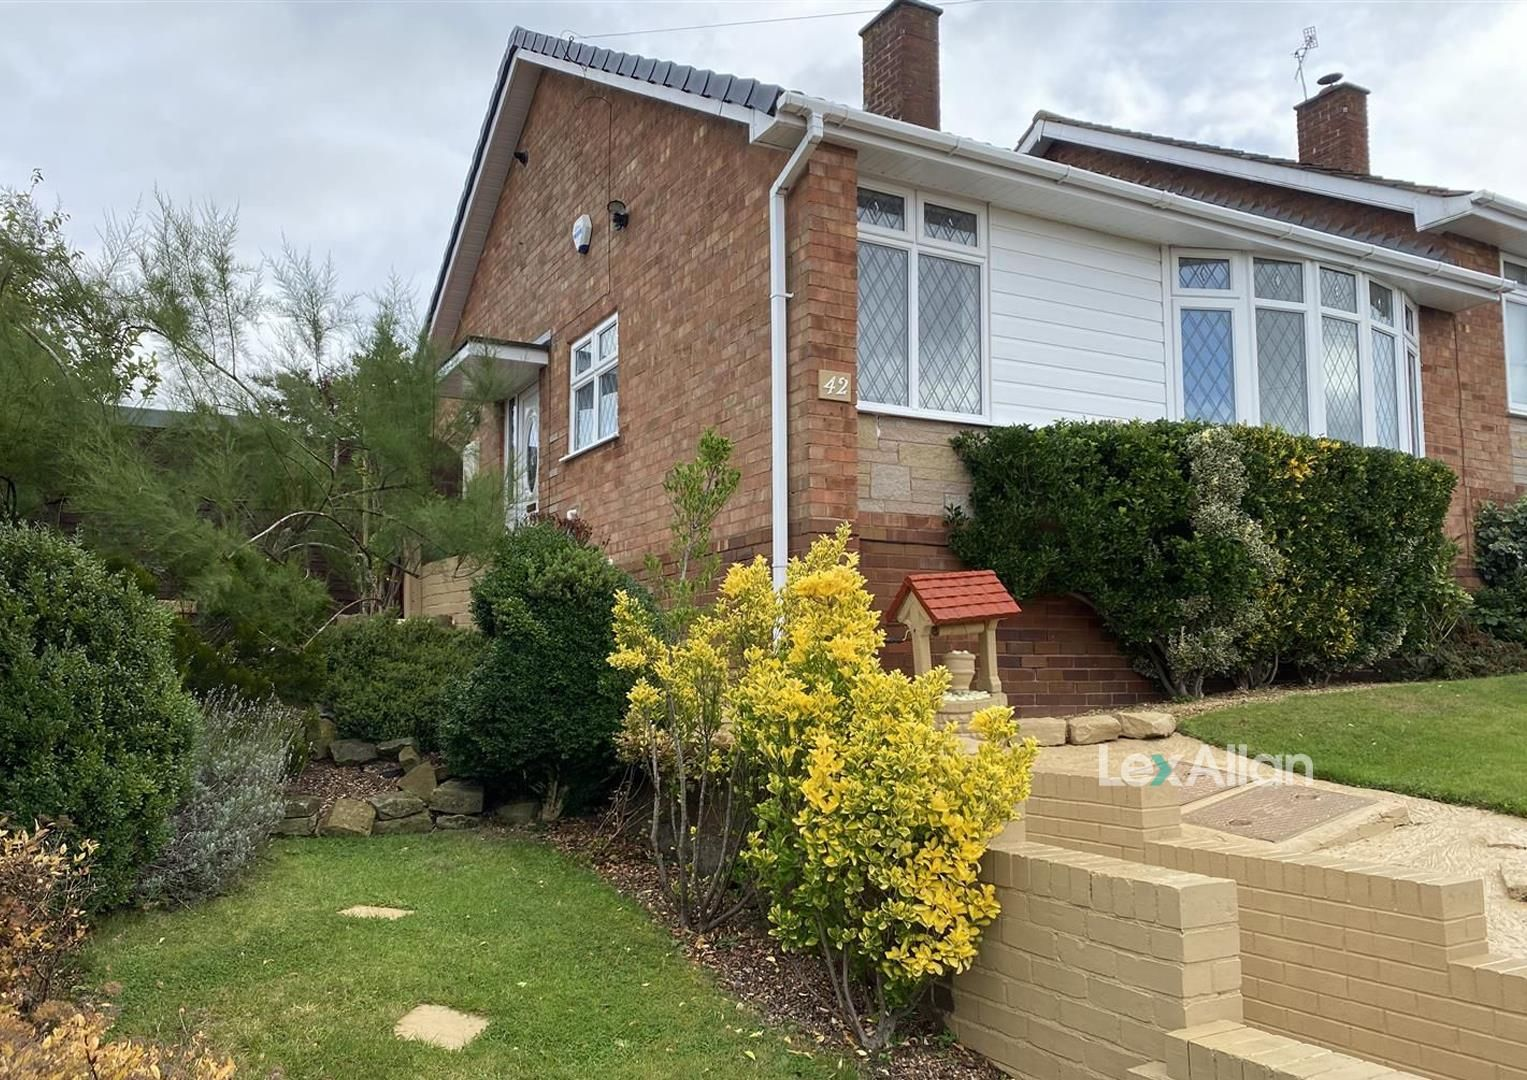 2 bed semi-detached-bungalow for sale, DY8